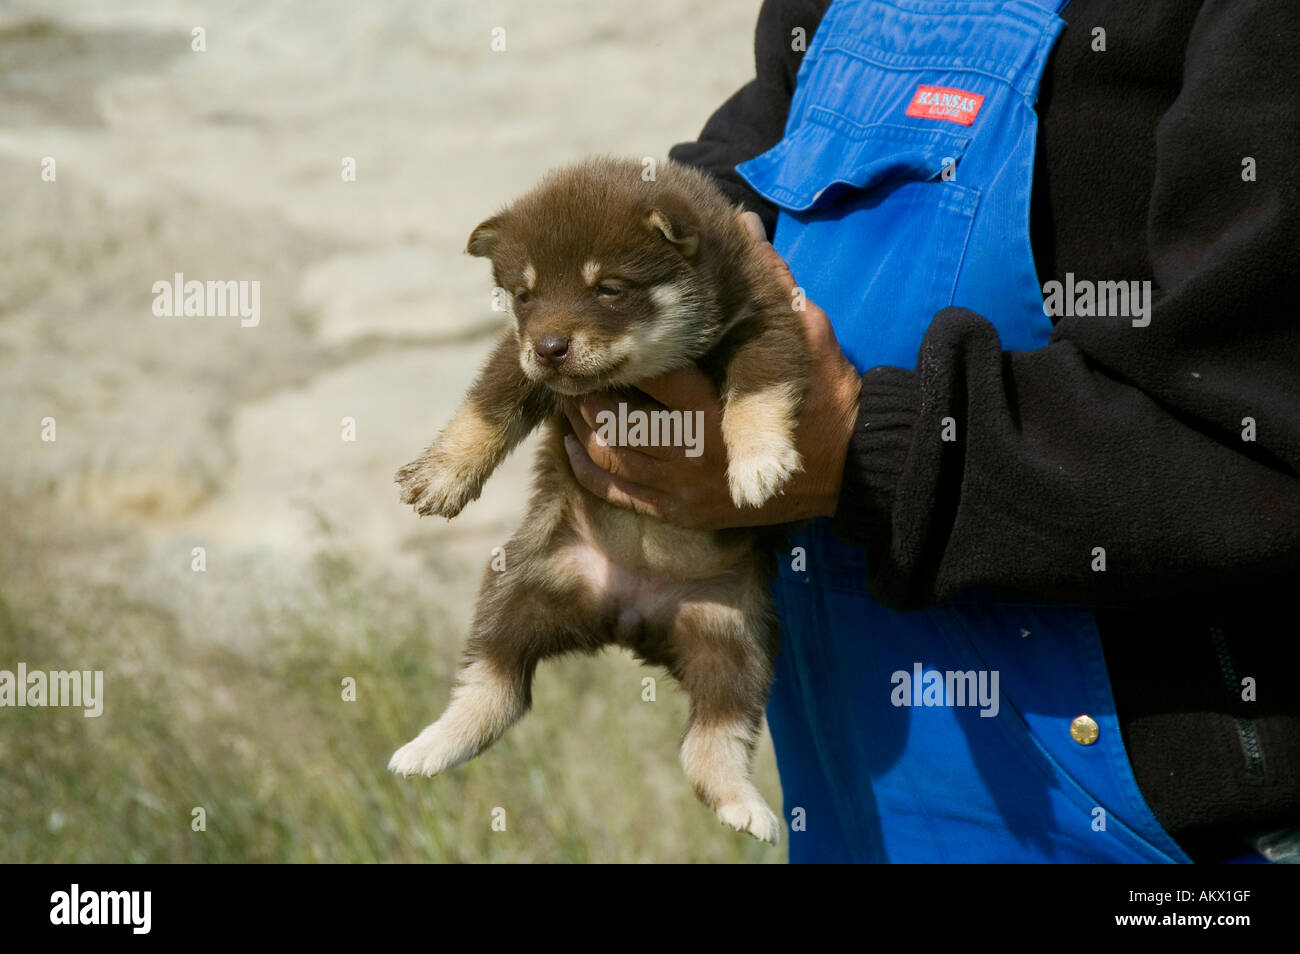 Dog breeder is holding Greenland dog puppy in his hand